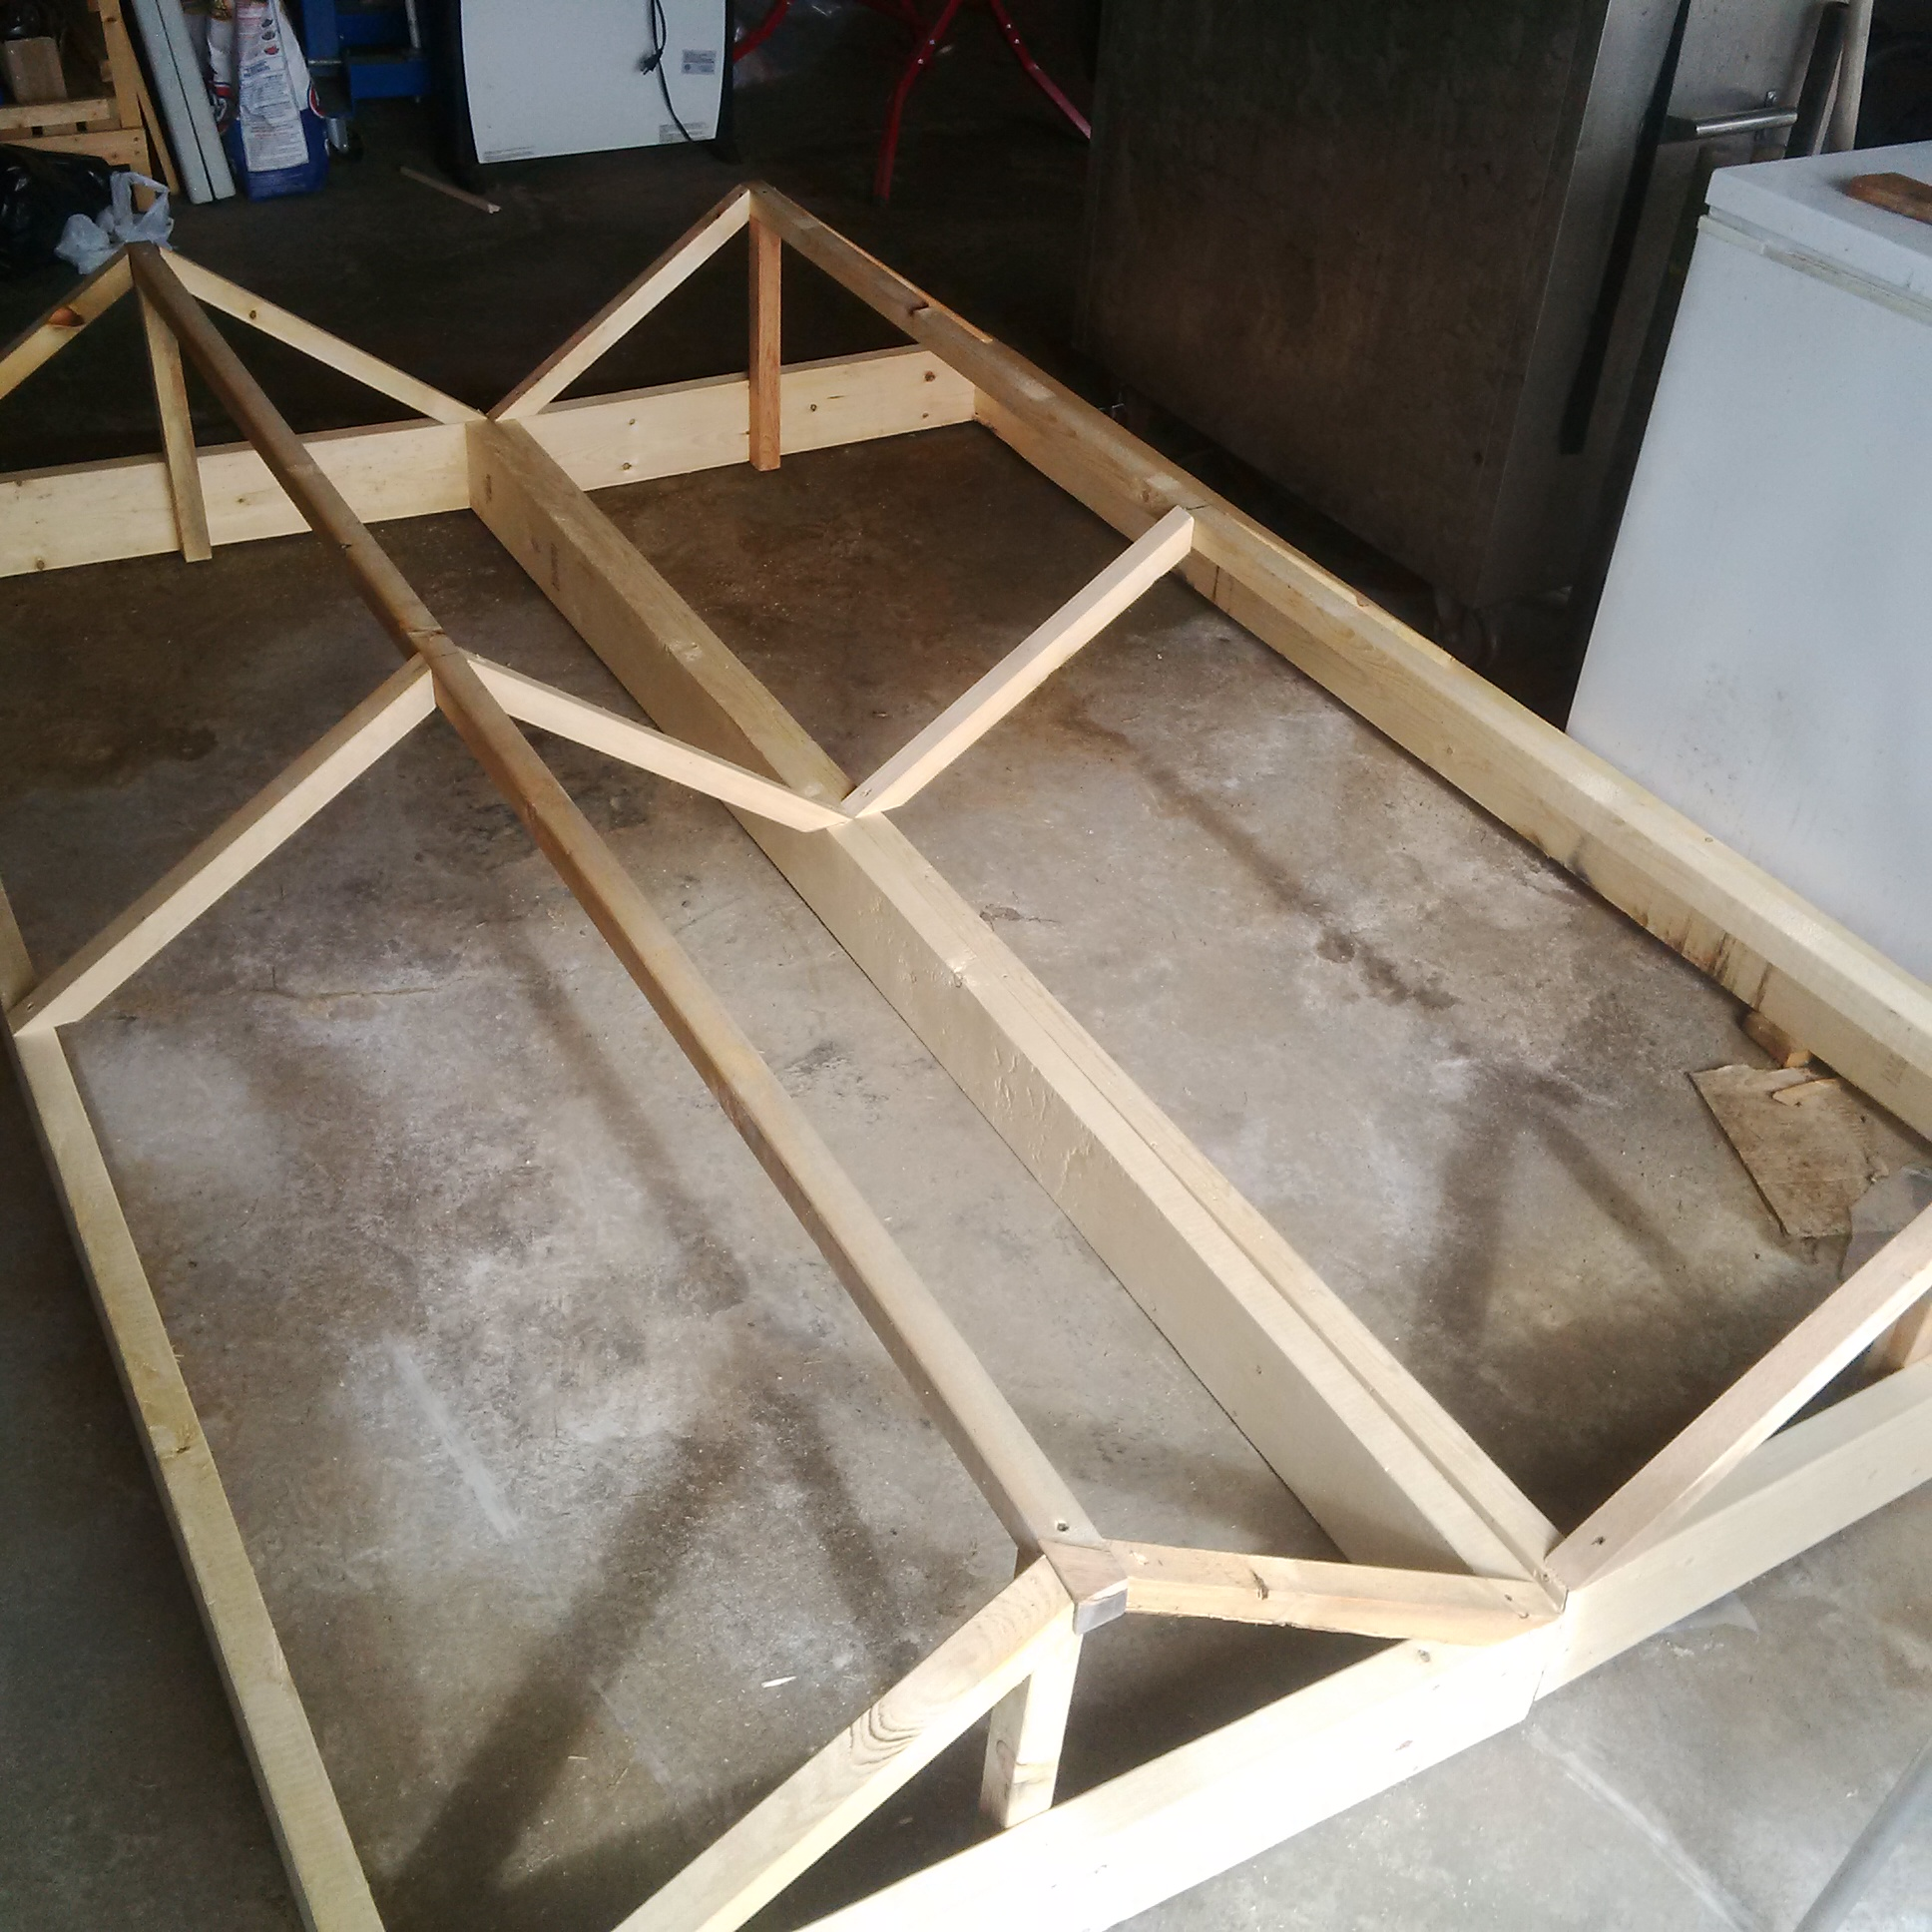 2 field frames, not yet completed.